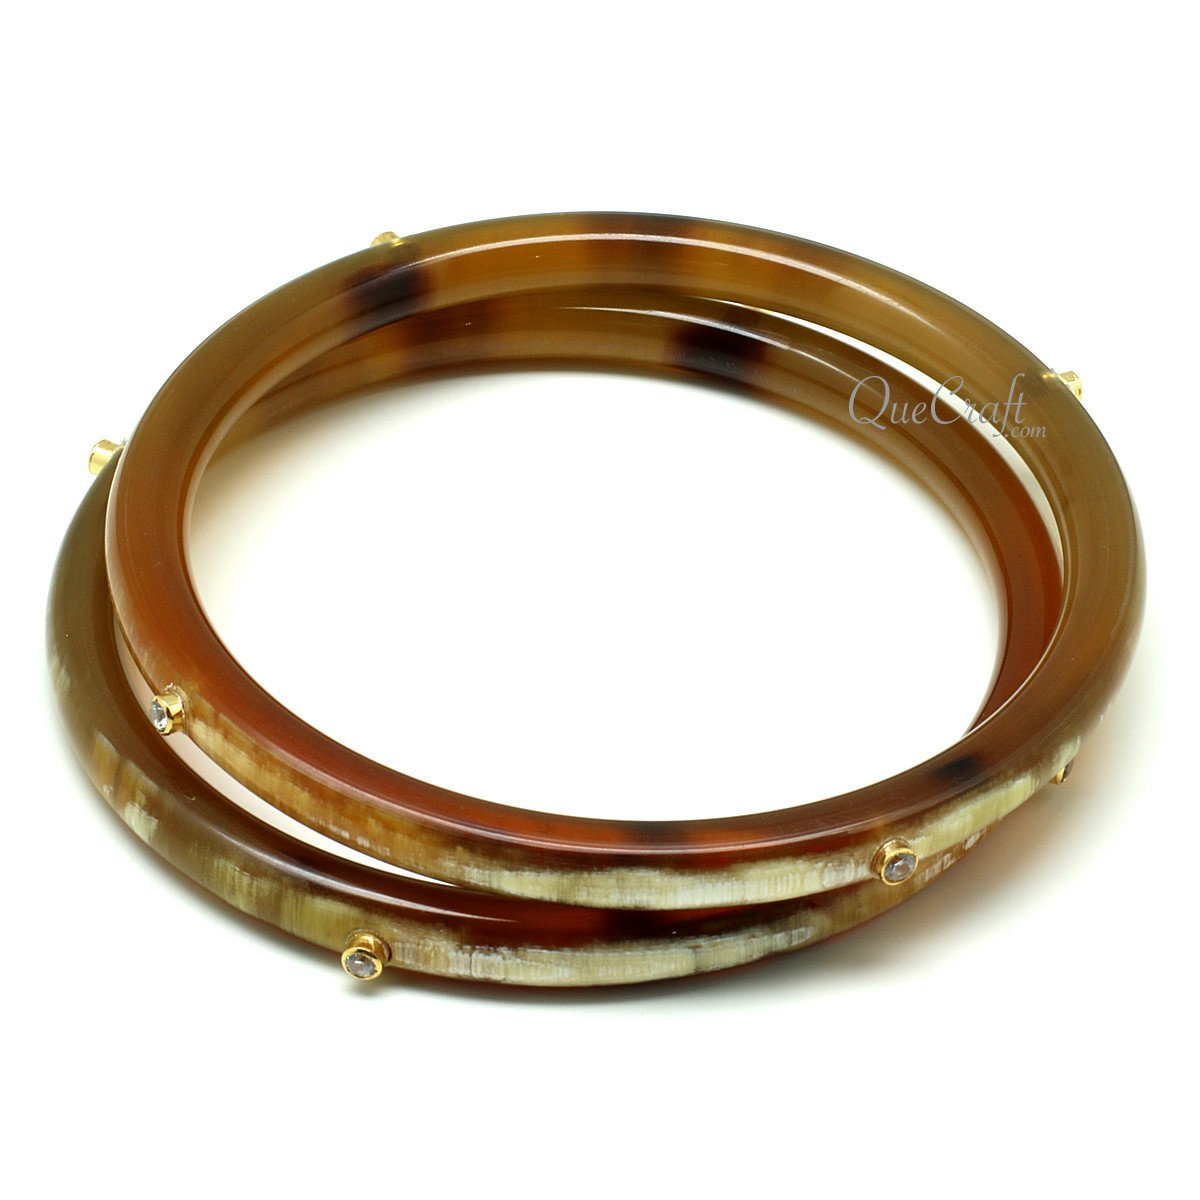 Horn & CZ Bangle Bracelets #11951 - HORN.JEWELRY by QueCraft